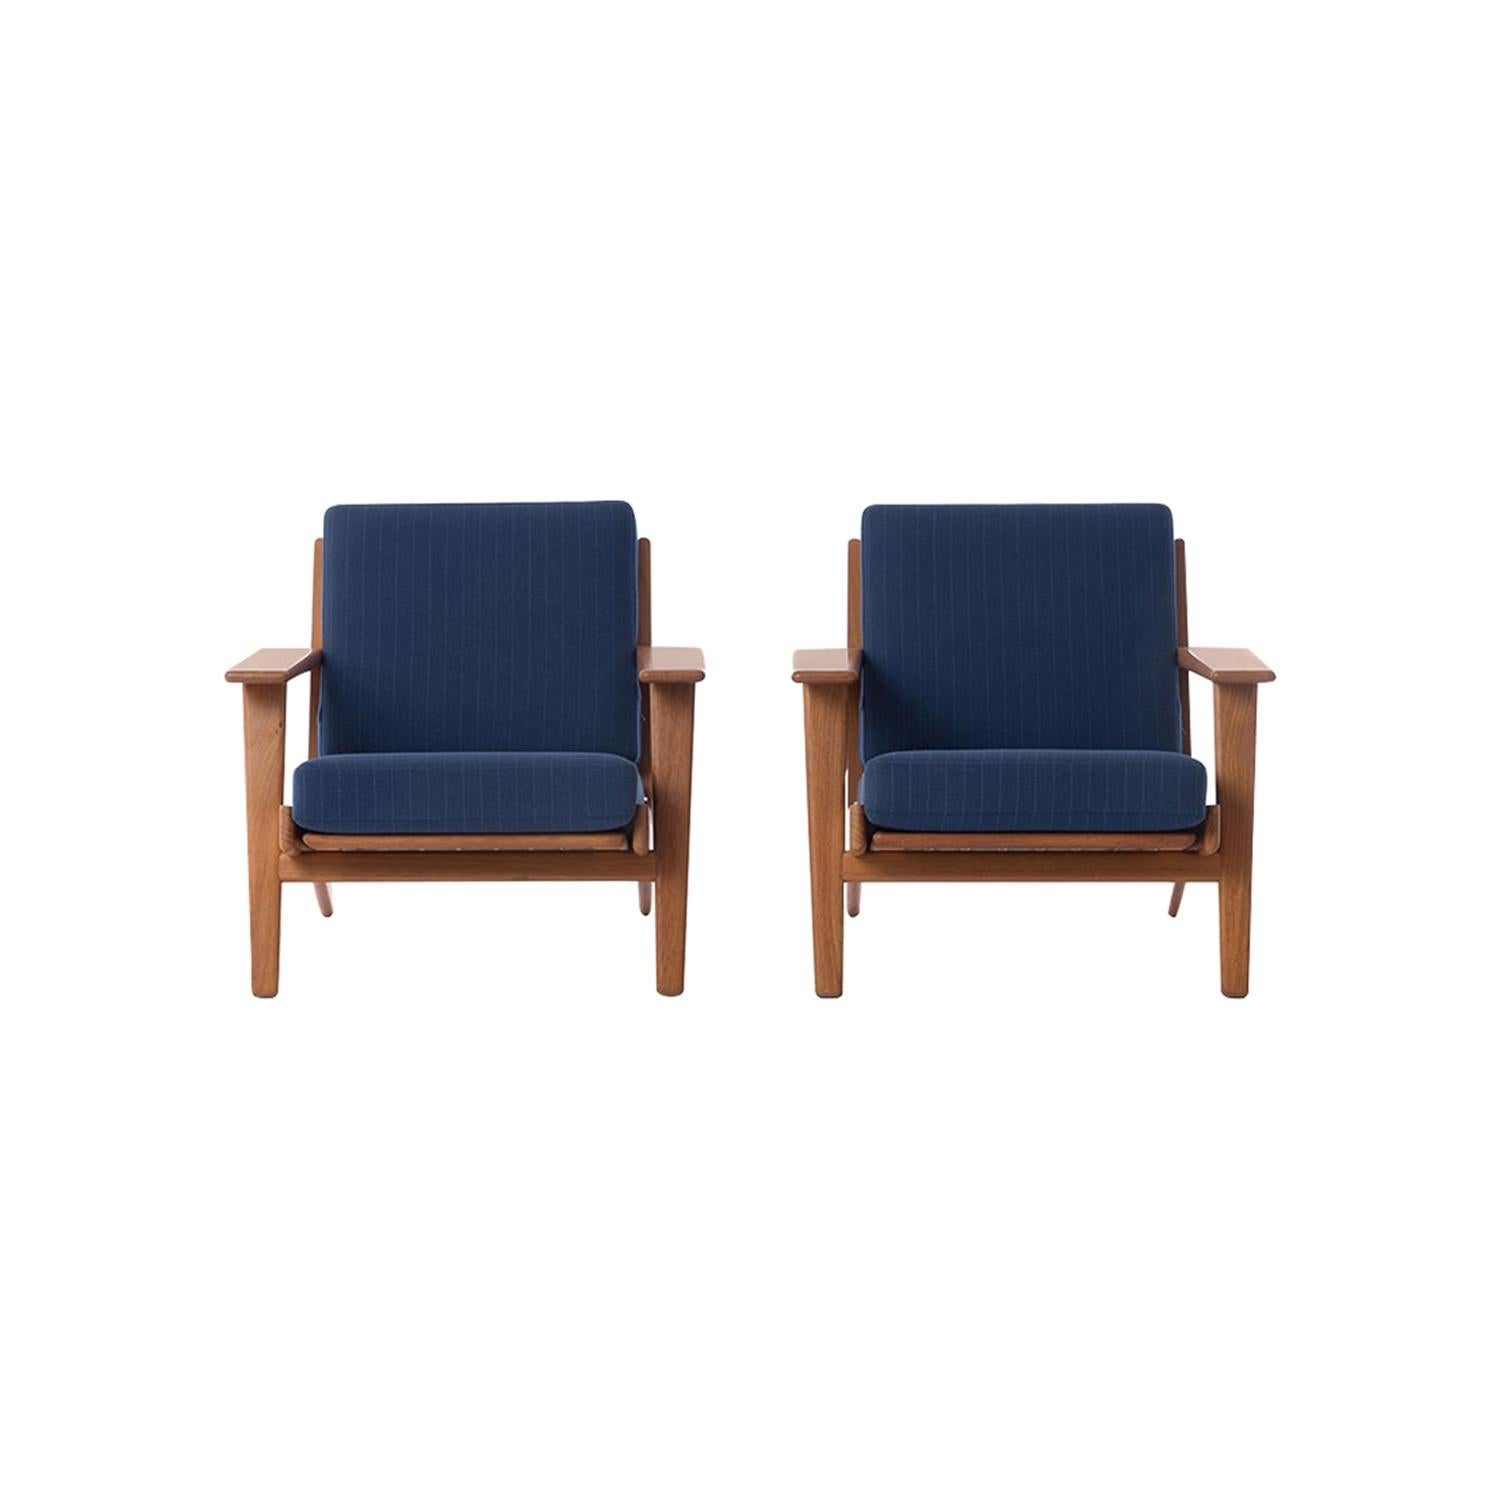 Danish Modern GE290 Teak Lounge Chairs by Hans J. Wegner GETAMA 290